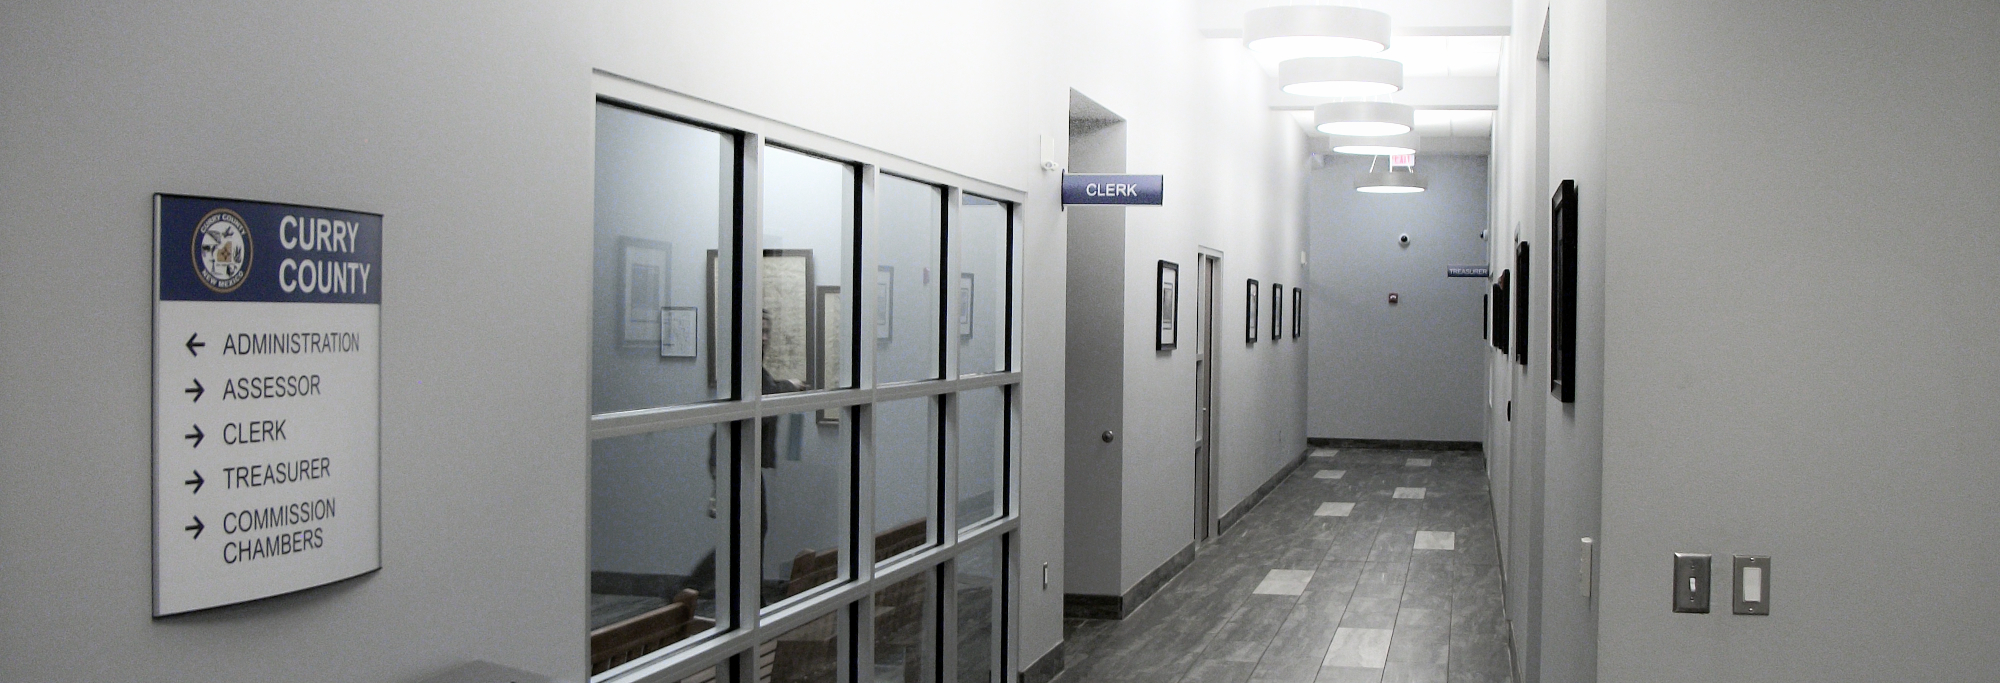 County Offices Hallway